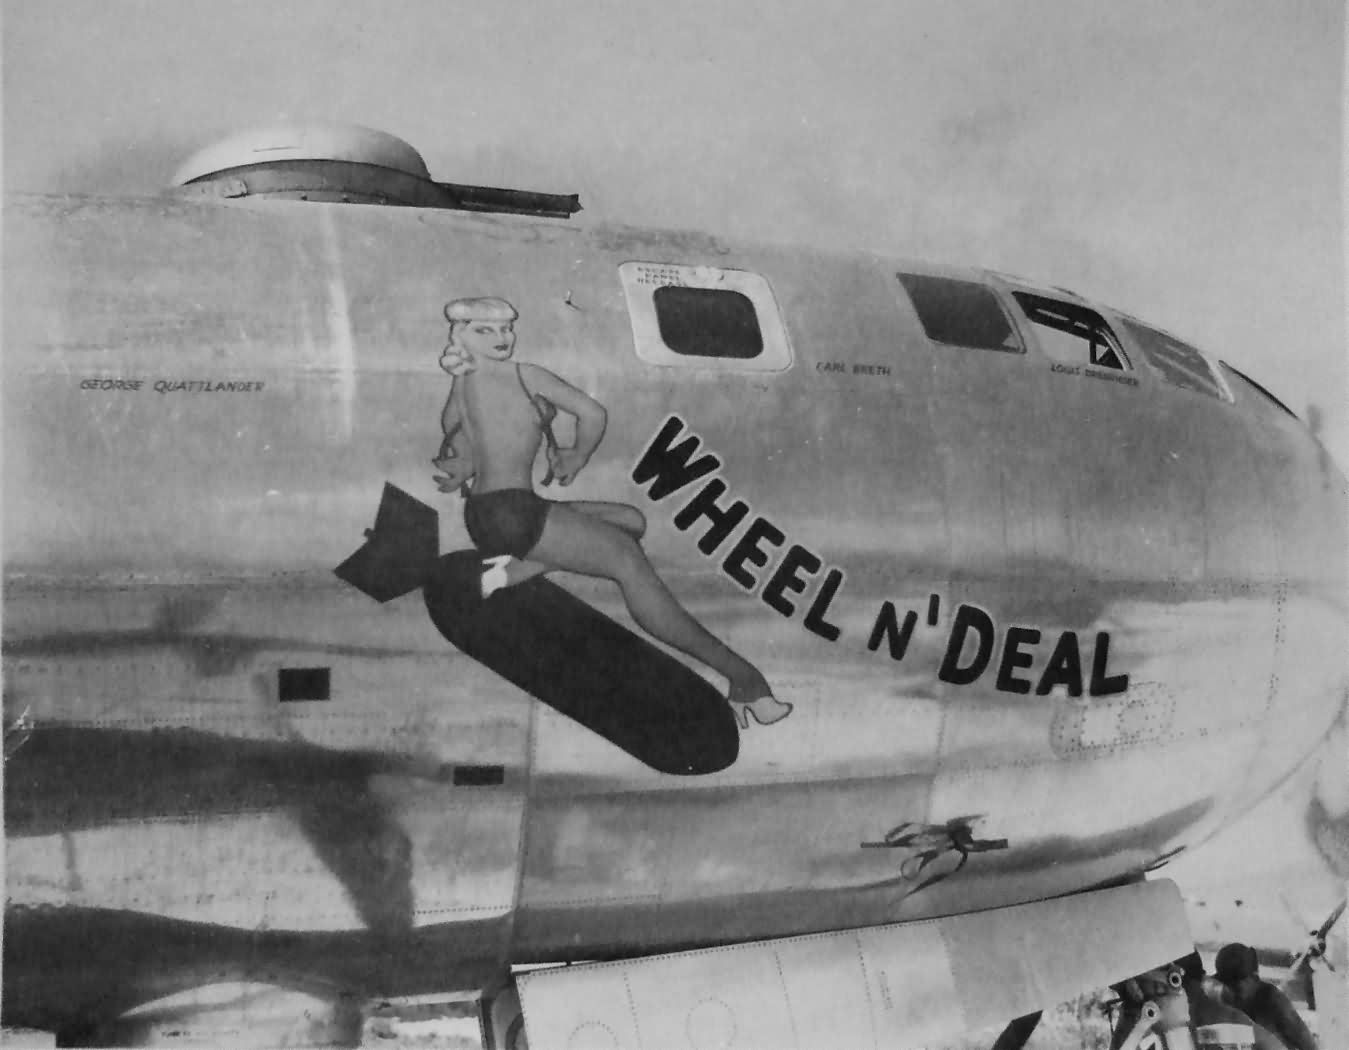 B-29 Superfortress WHEEL N' DEAL nose art 497th Bomb Group 870th Bomb Squadron